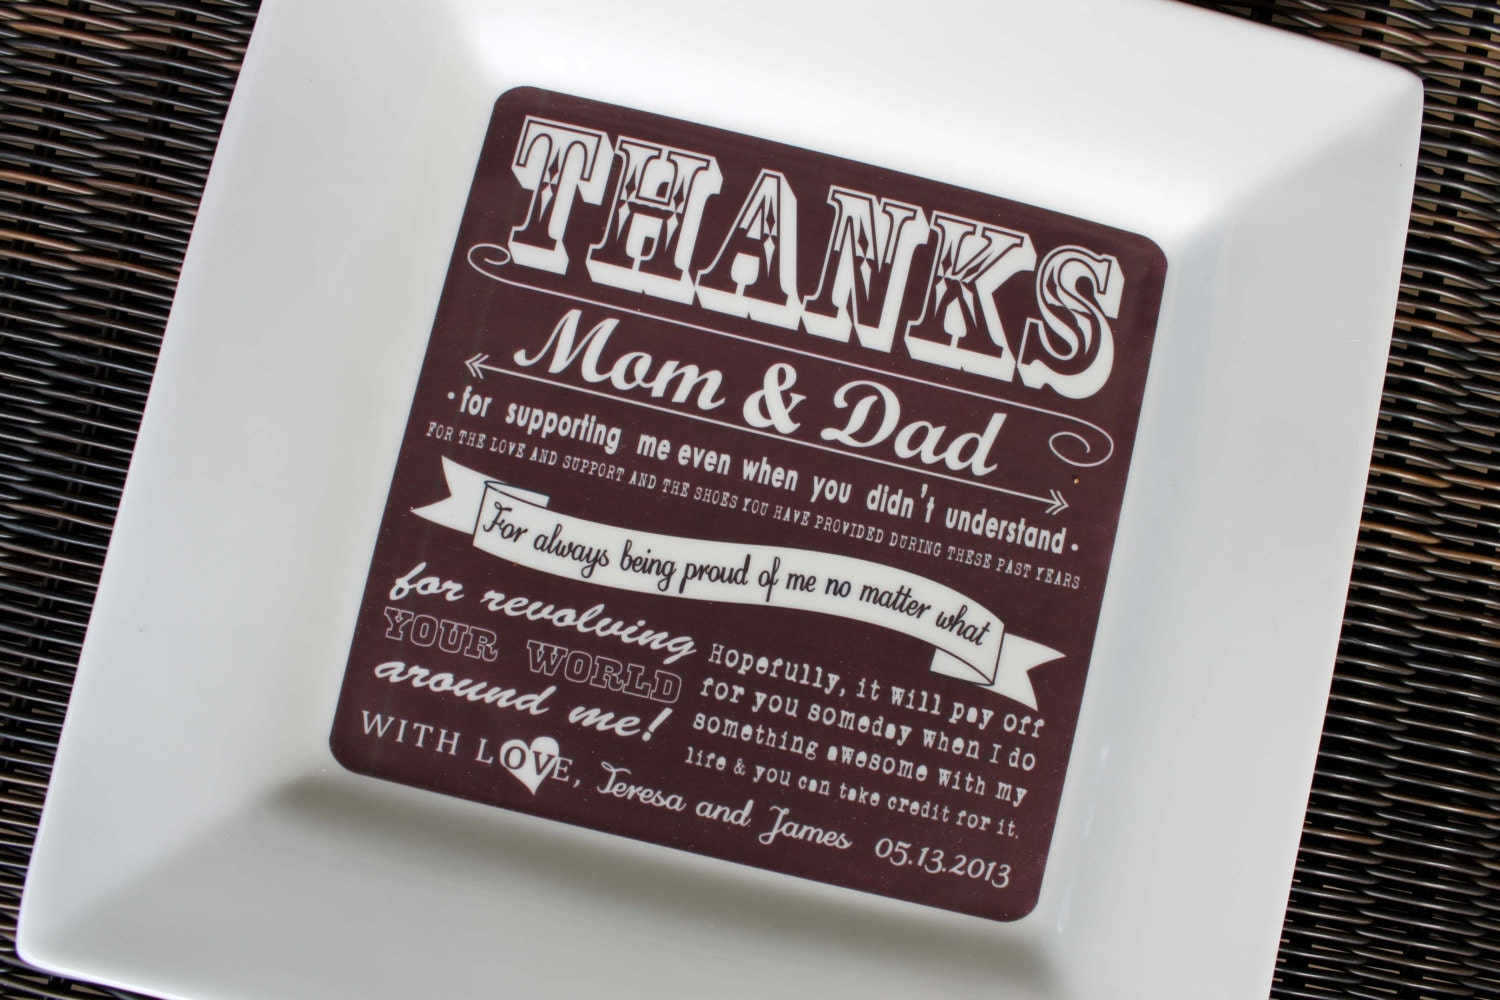 Customary Wedding Gift From Grooms Parents : Request a custom order and have something made just for you.